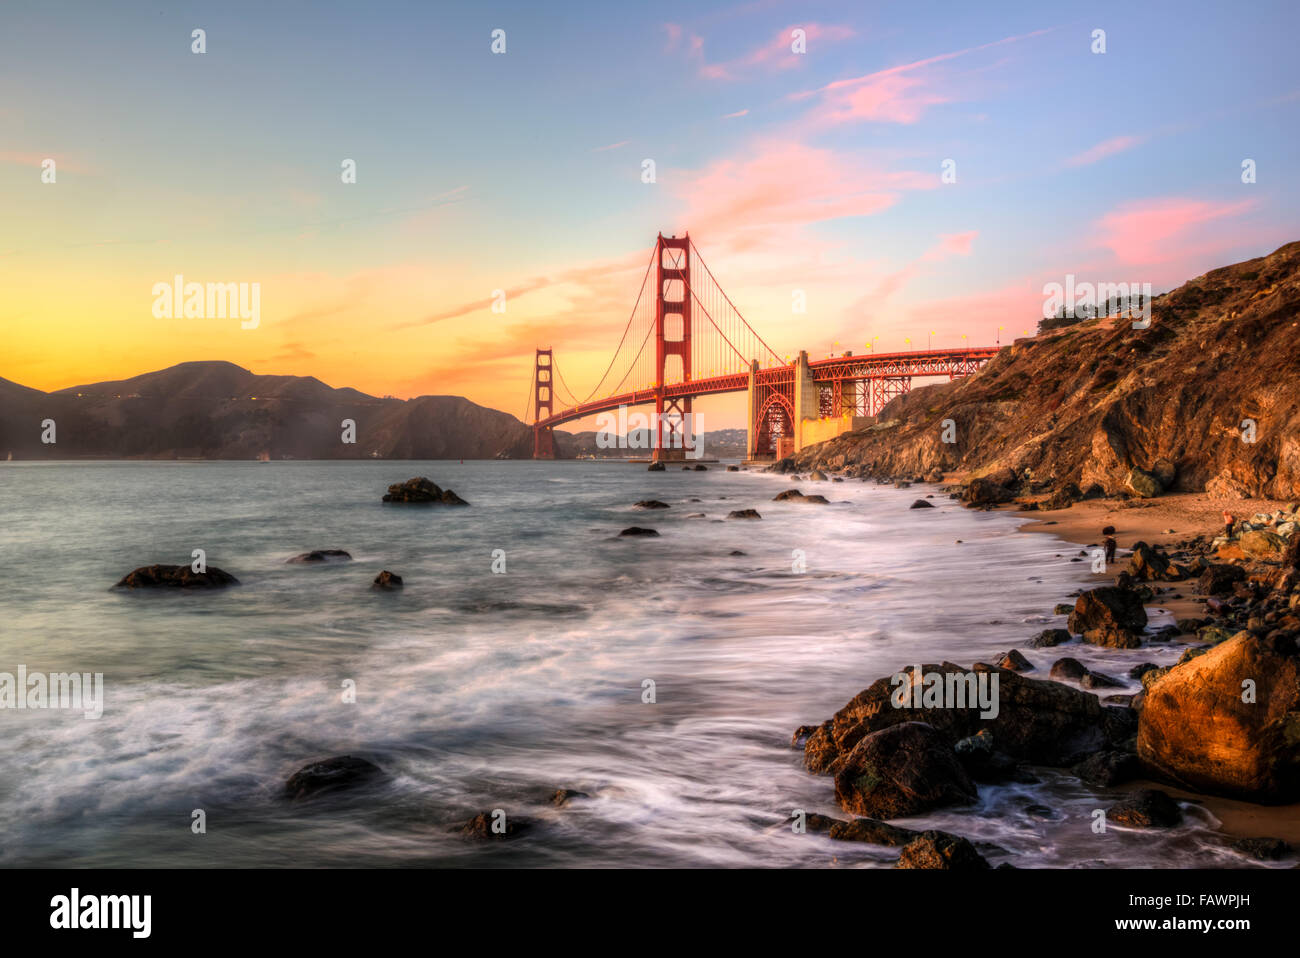 Golden Gate Bridge, Marshall's beach, sunset, rocky coast, San Francisco, USA - Stock Image